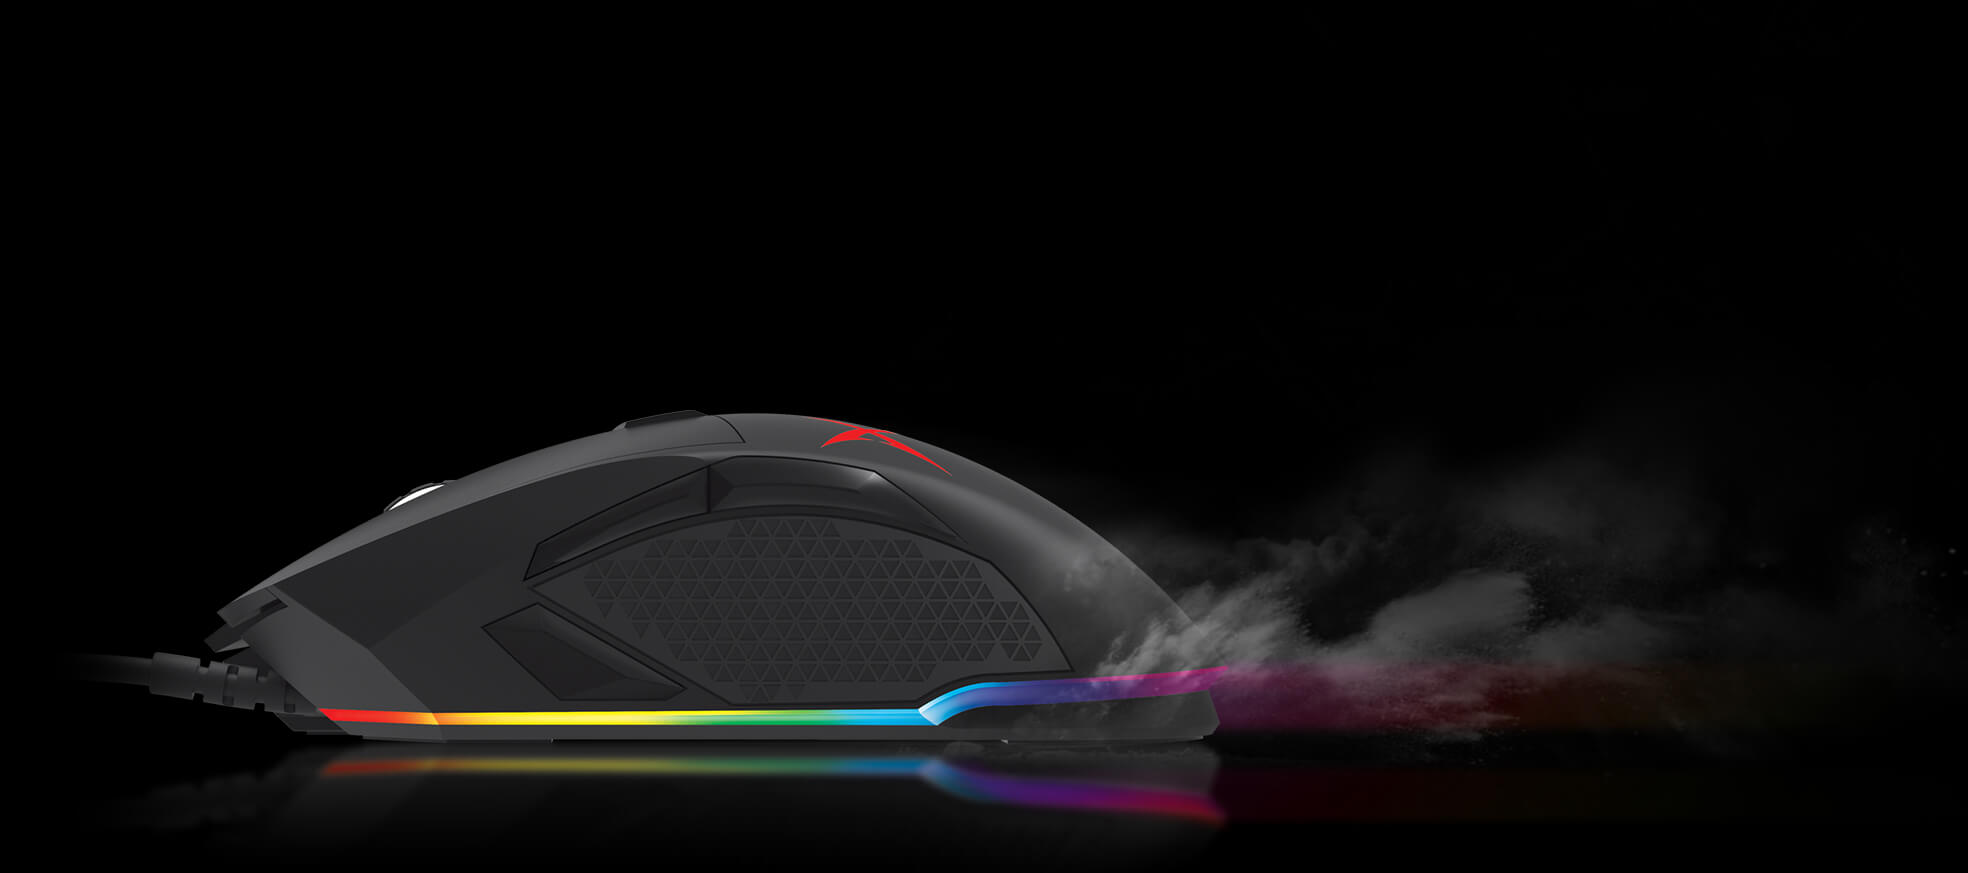 Have a gaming mouse? Turn down your dang DPI | VentureBeat